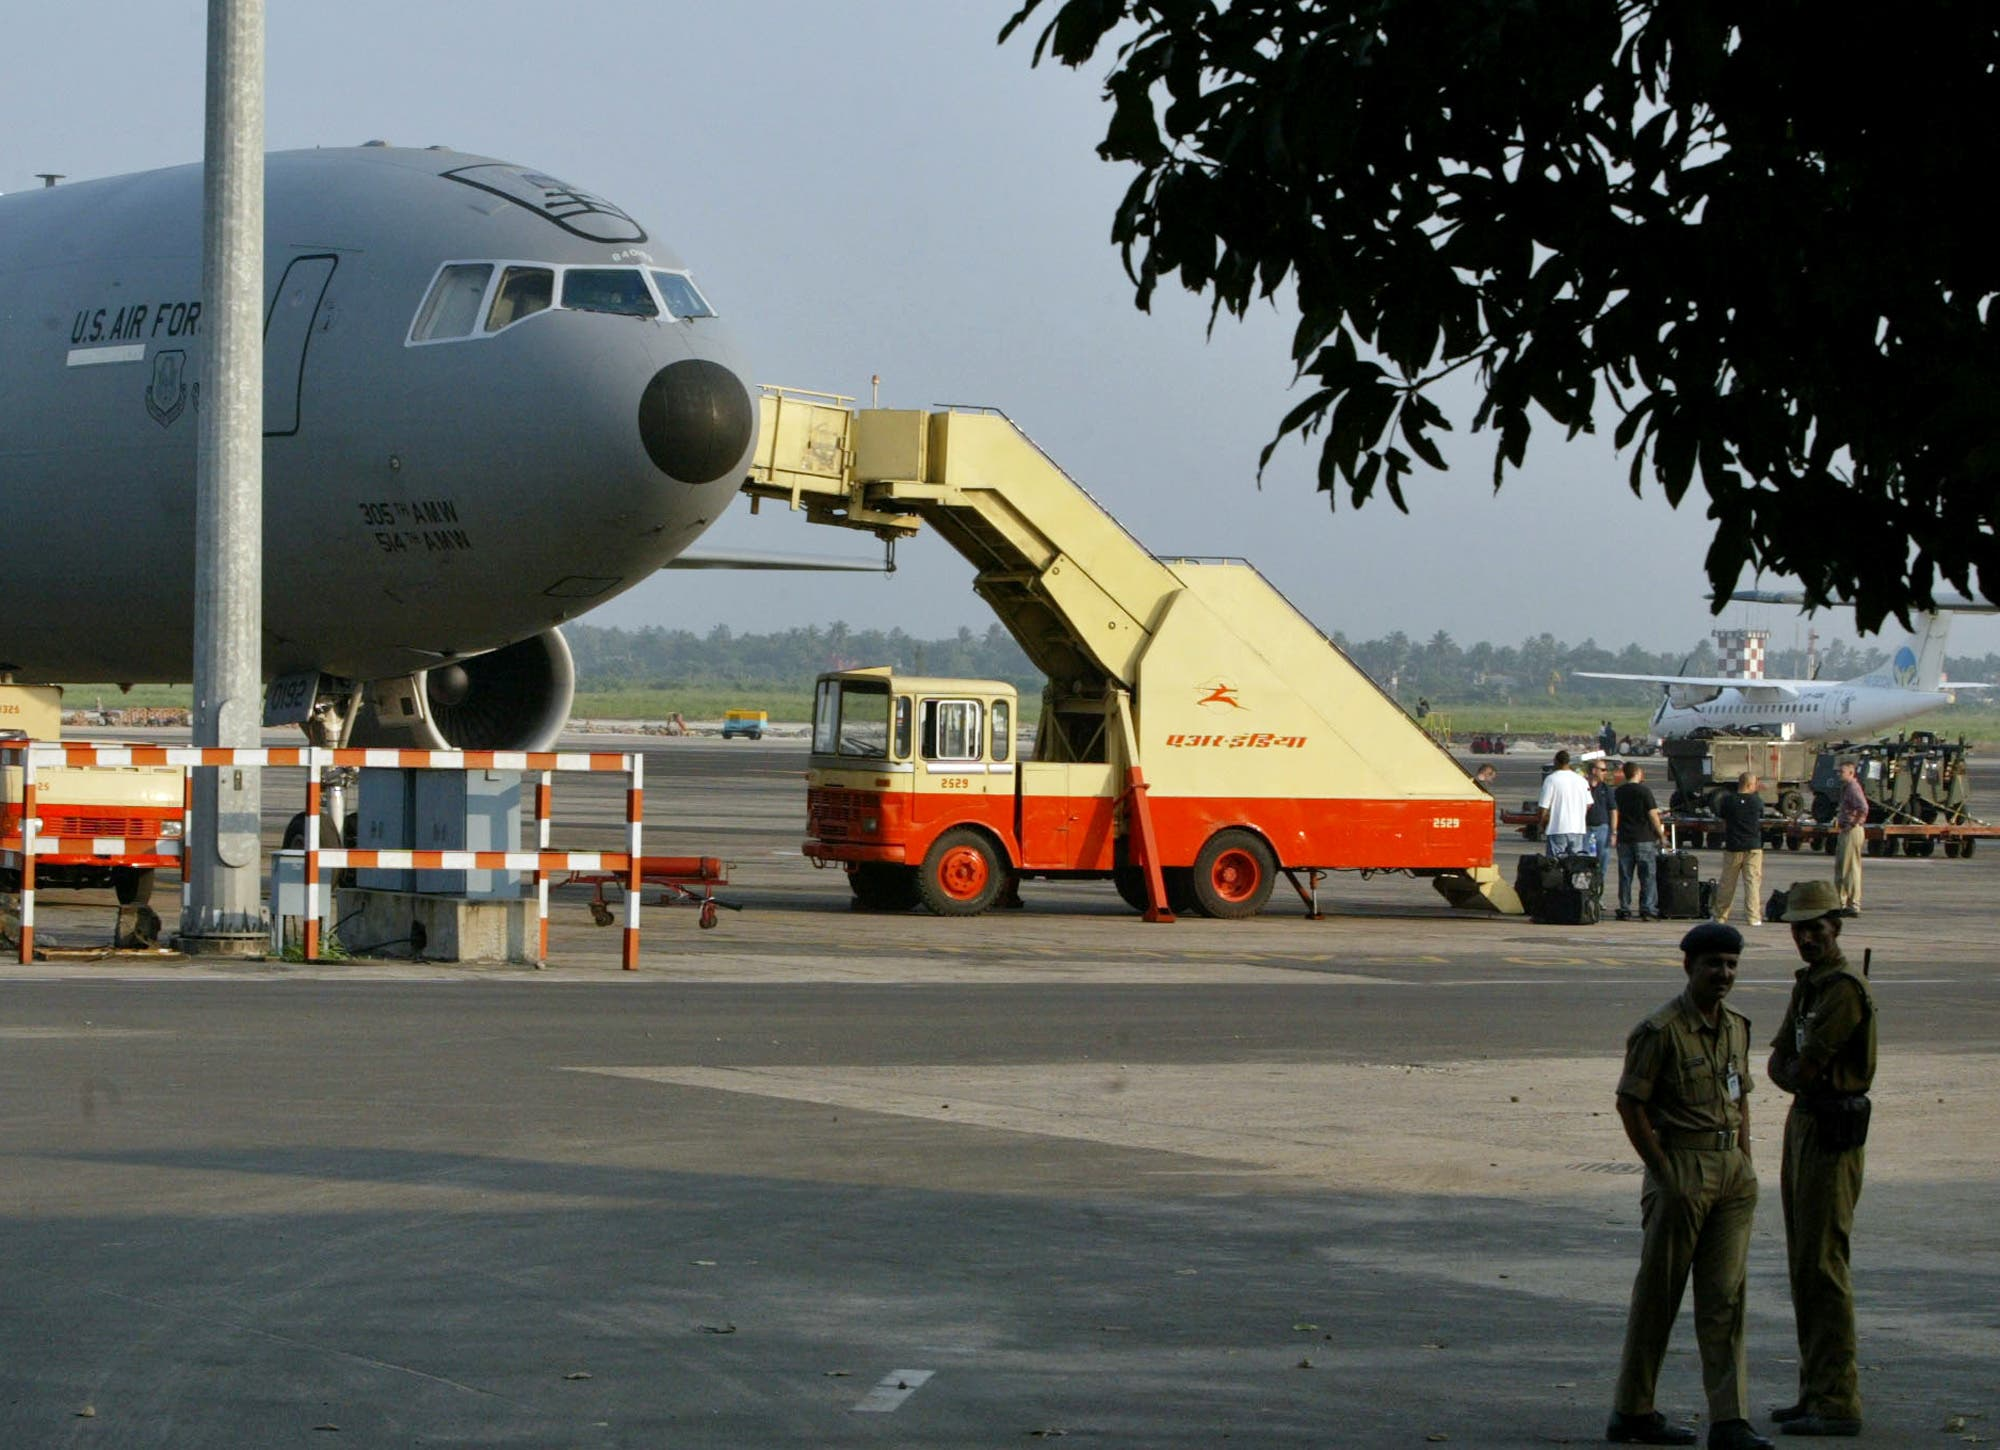 US Air Force personnel prepare to board a US Air Force KC10 plane at the Netaji Subhash Chandra Bose International airport in Calcutta on Nov. 4, 2005. (AP)